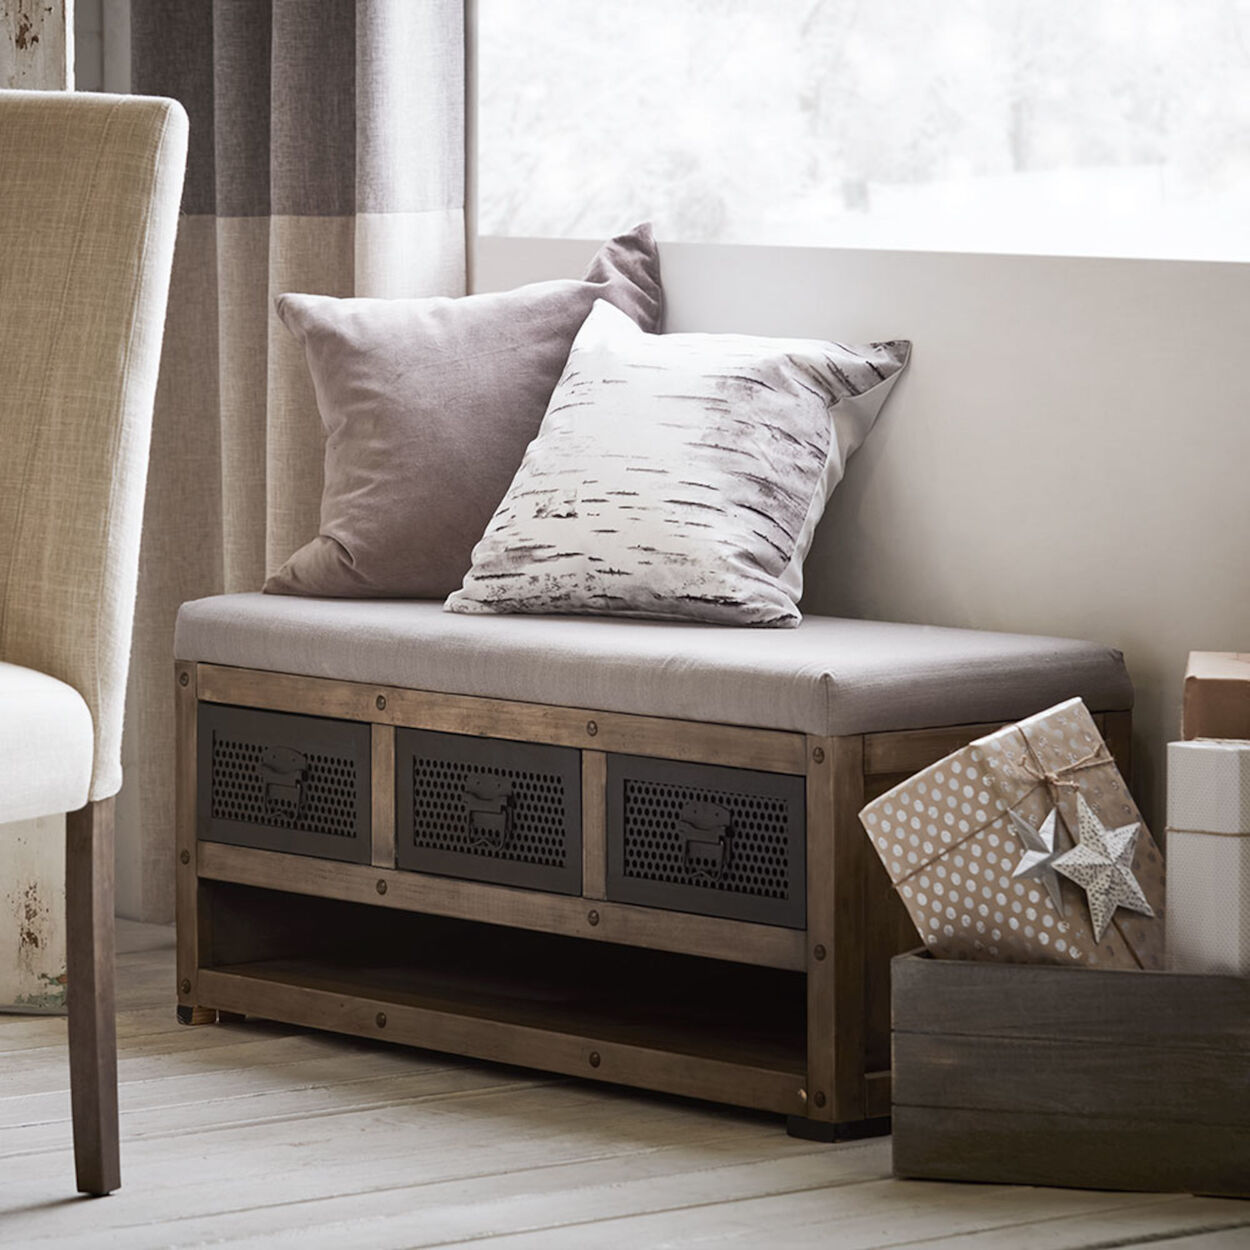 Rustic Wood and Fabric Storage Bench